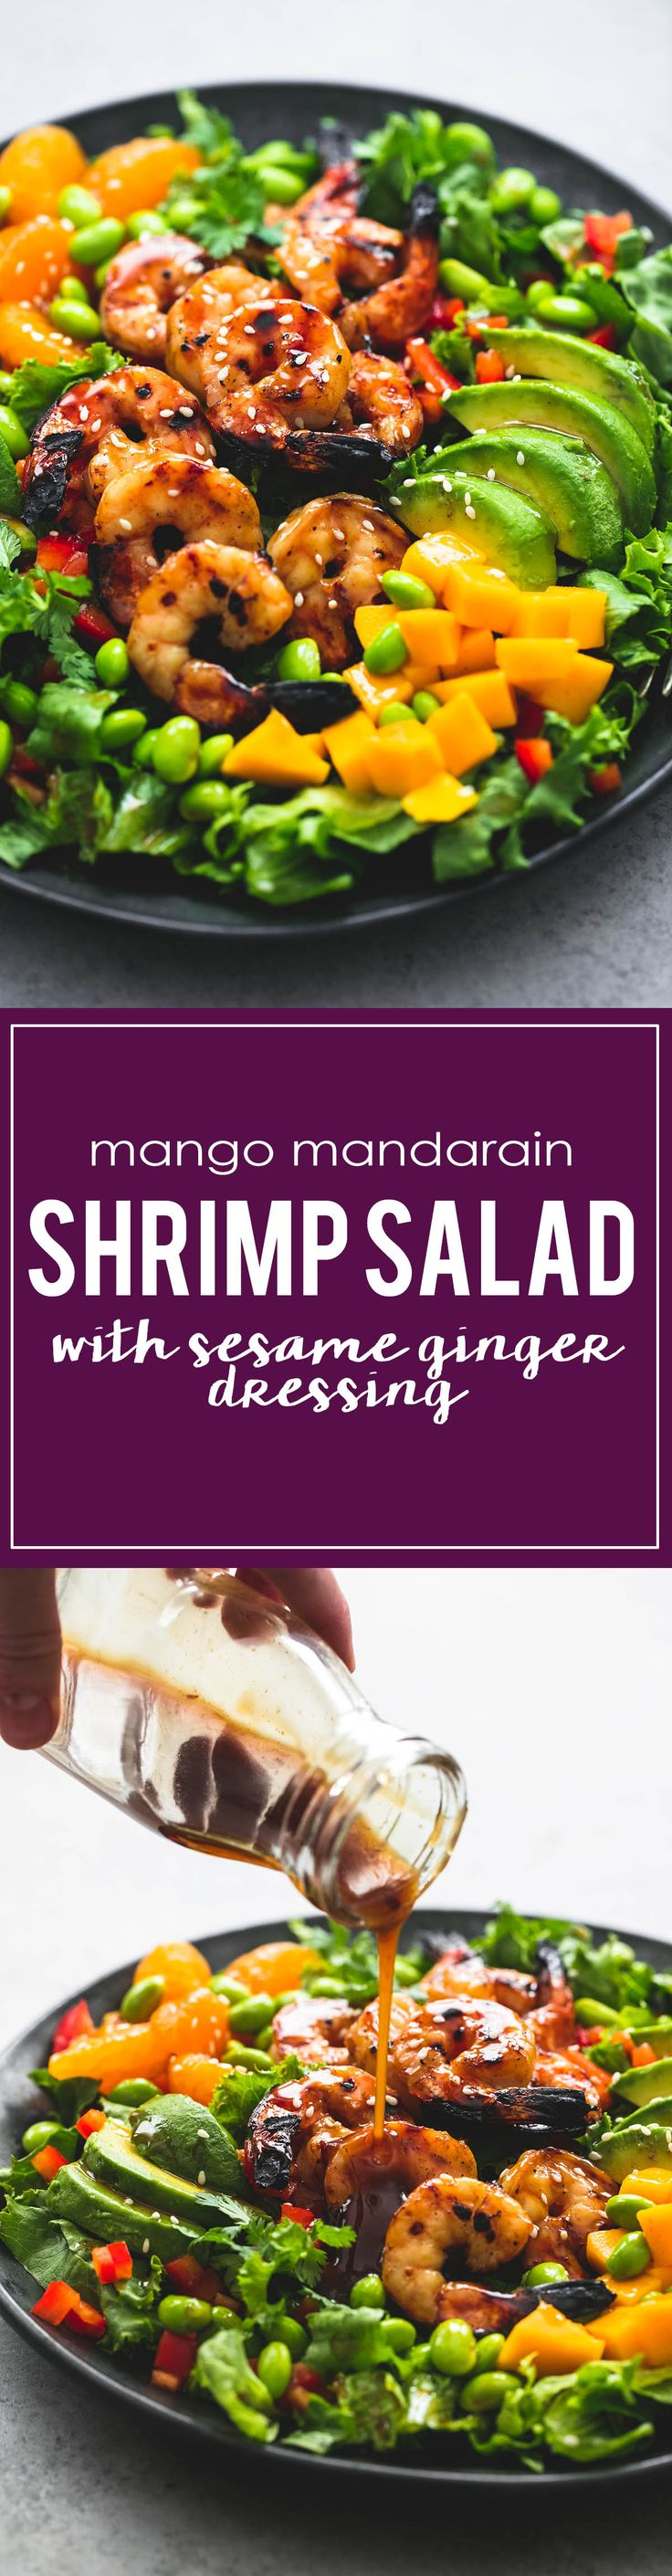 """Mango Mandarin Sesame Shrimp Salad! Would be absolutely wonderful! Would use the dressing on other salads too! Blogger says """"Big, bold Asian flavors bring this mango mandarin sesame shrimp salad to life and make it a hearty, yet simple and healthy dish!"""" Definitely!"""